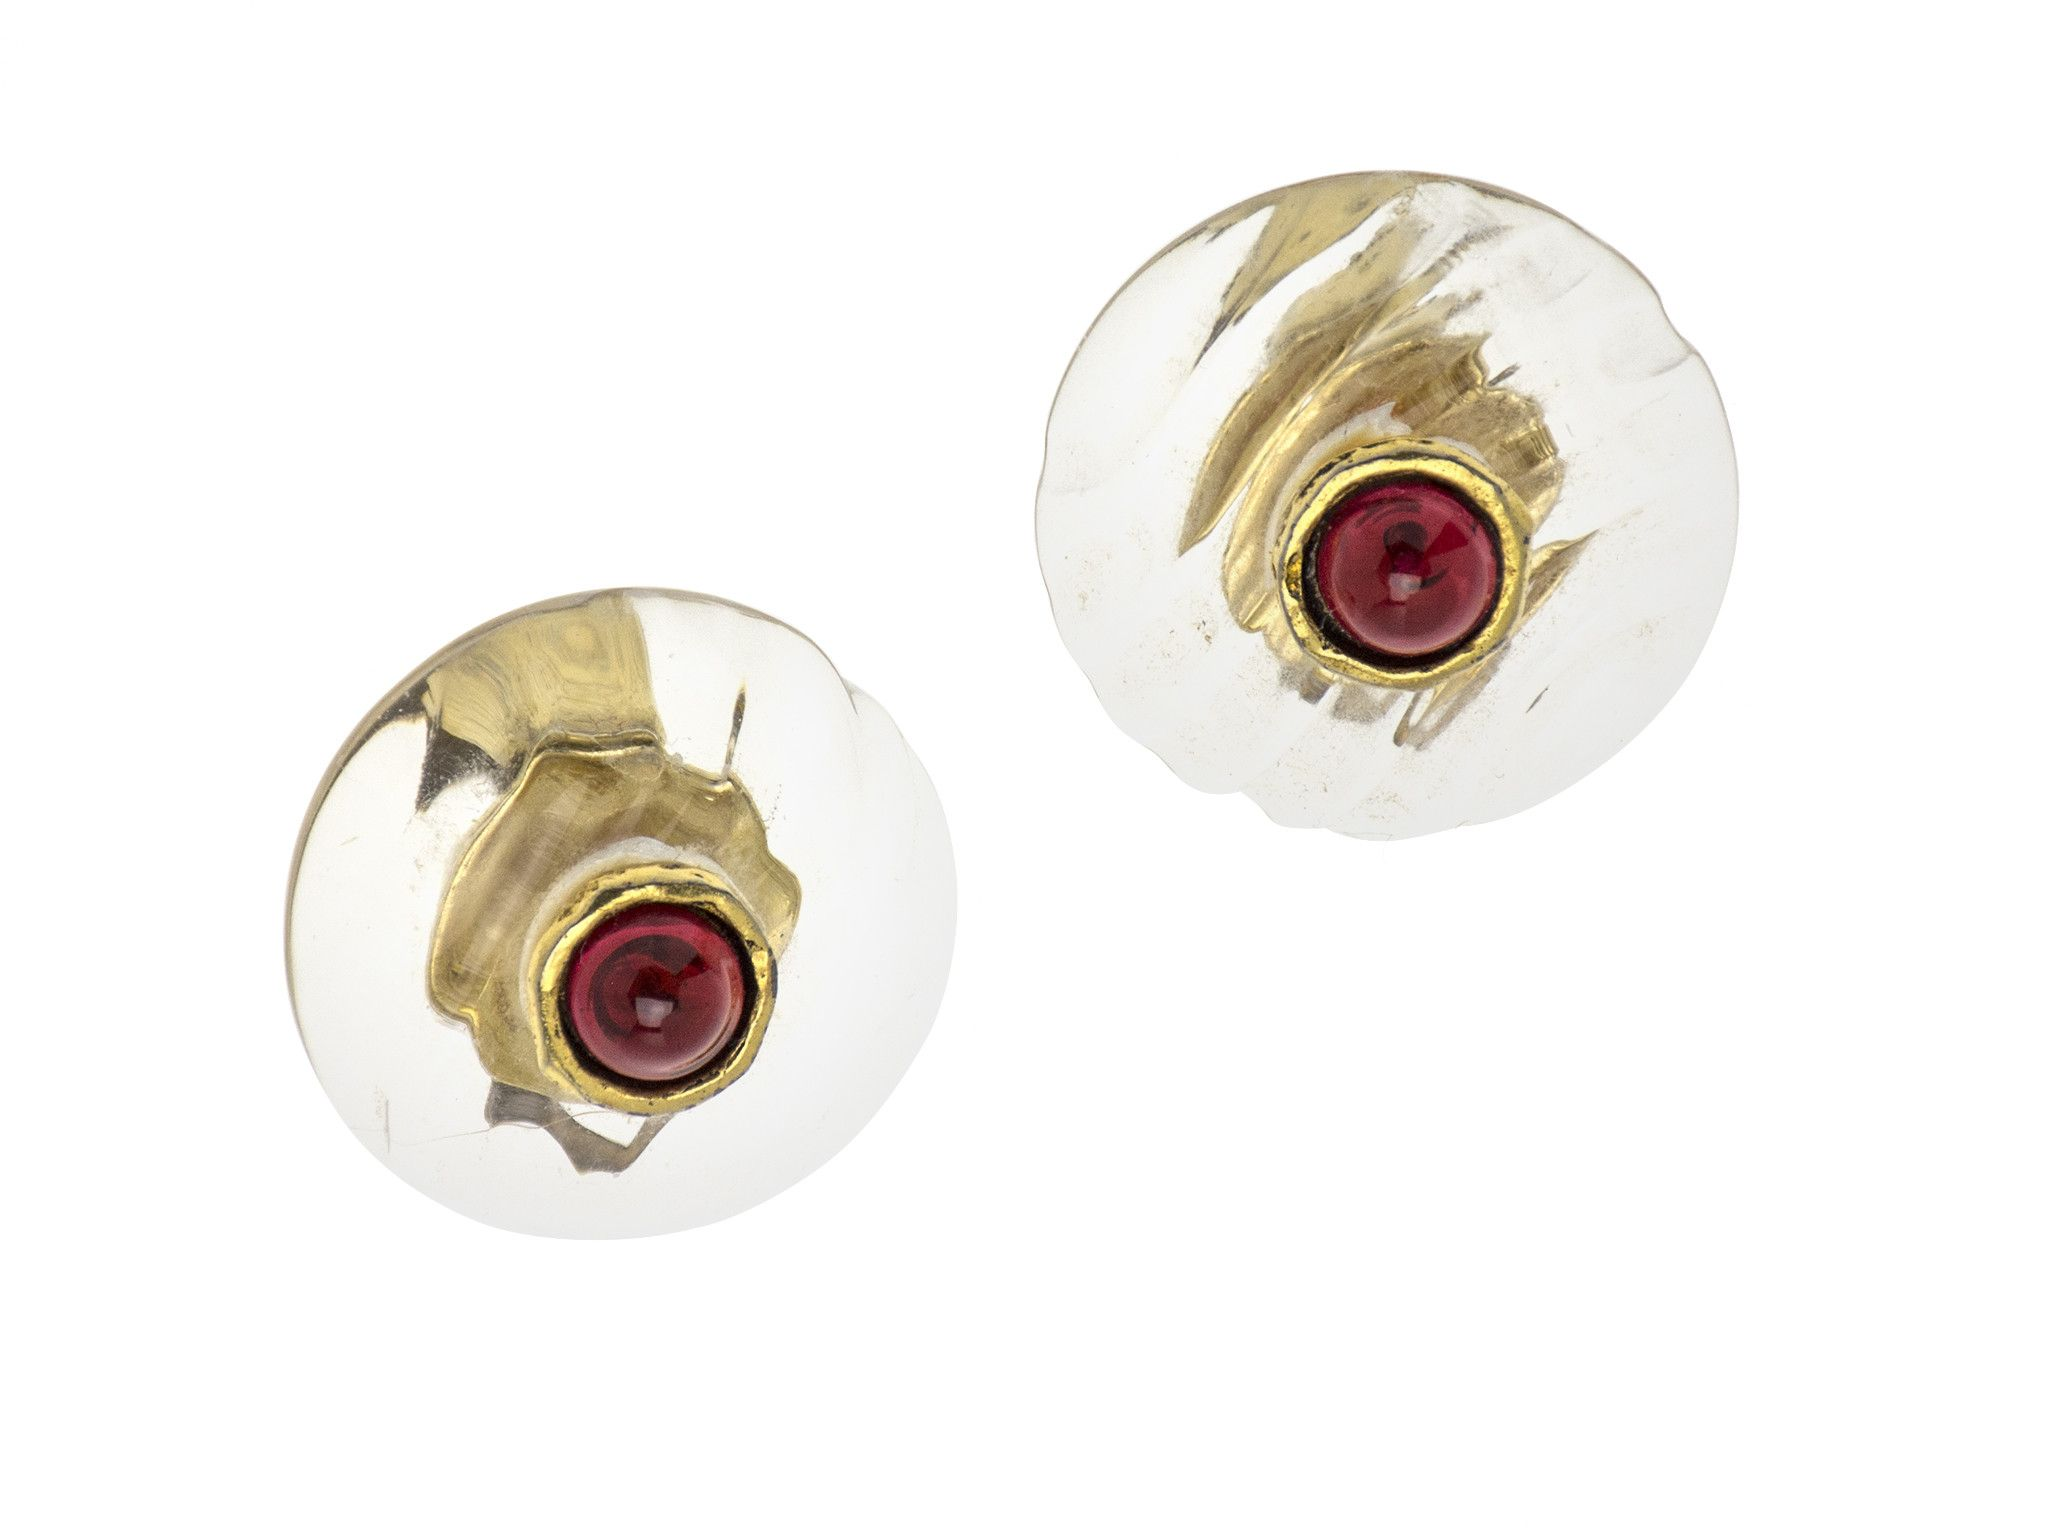 Chanel Vintage Lucite Earrings